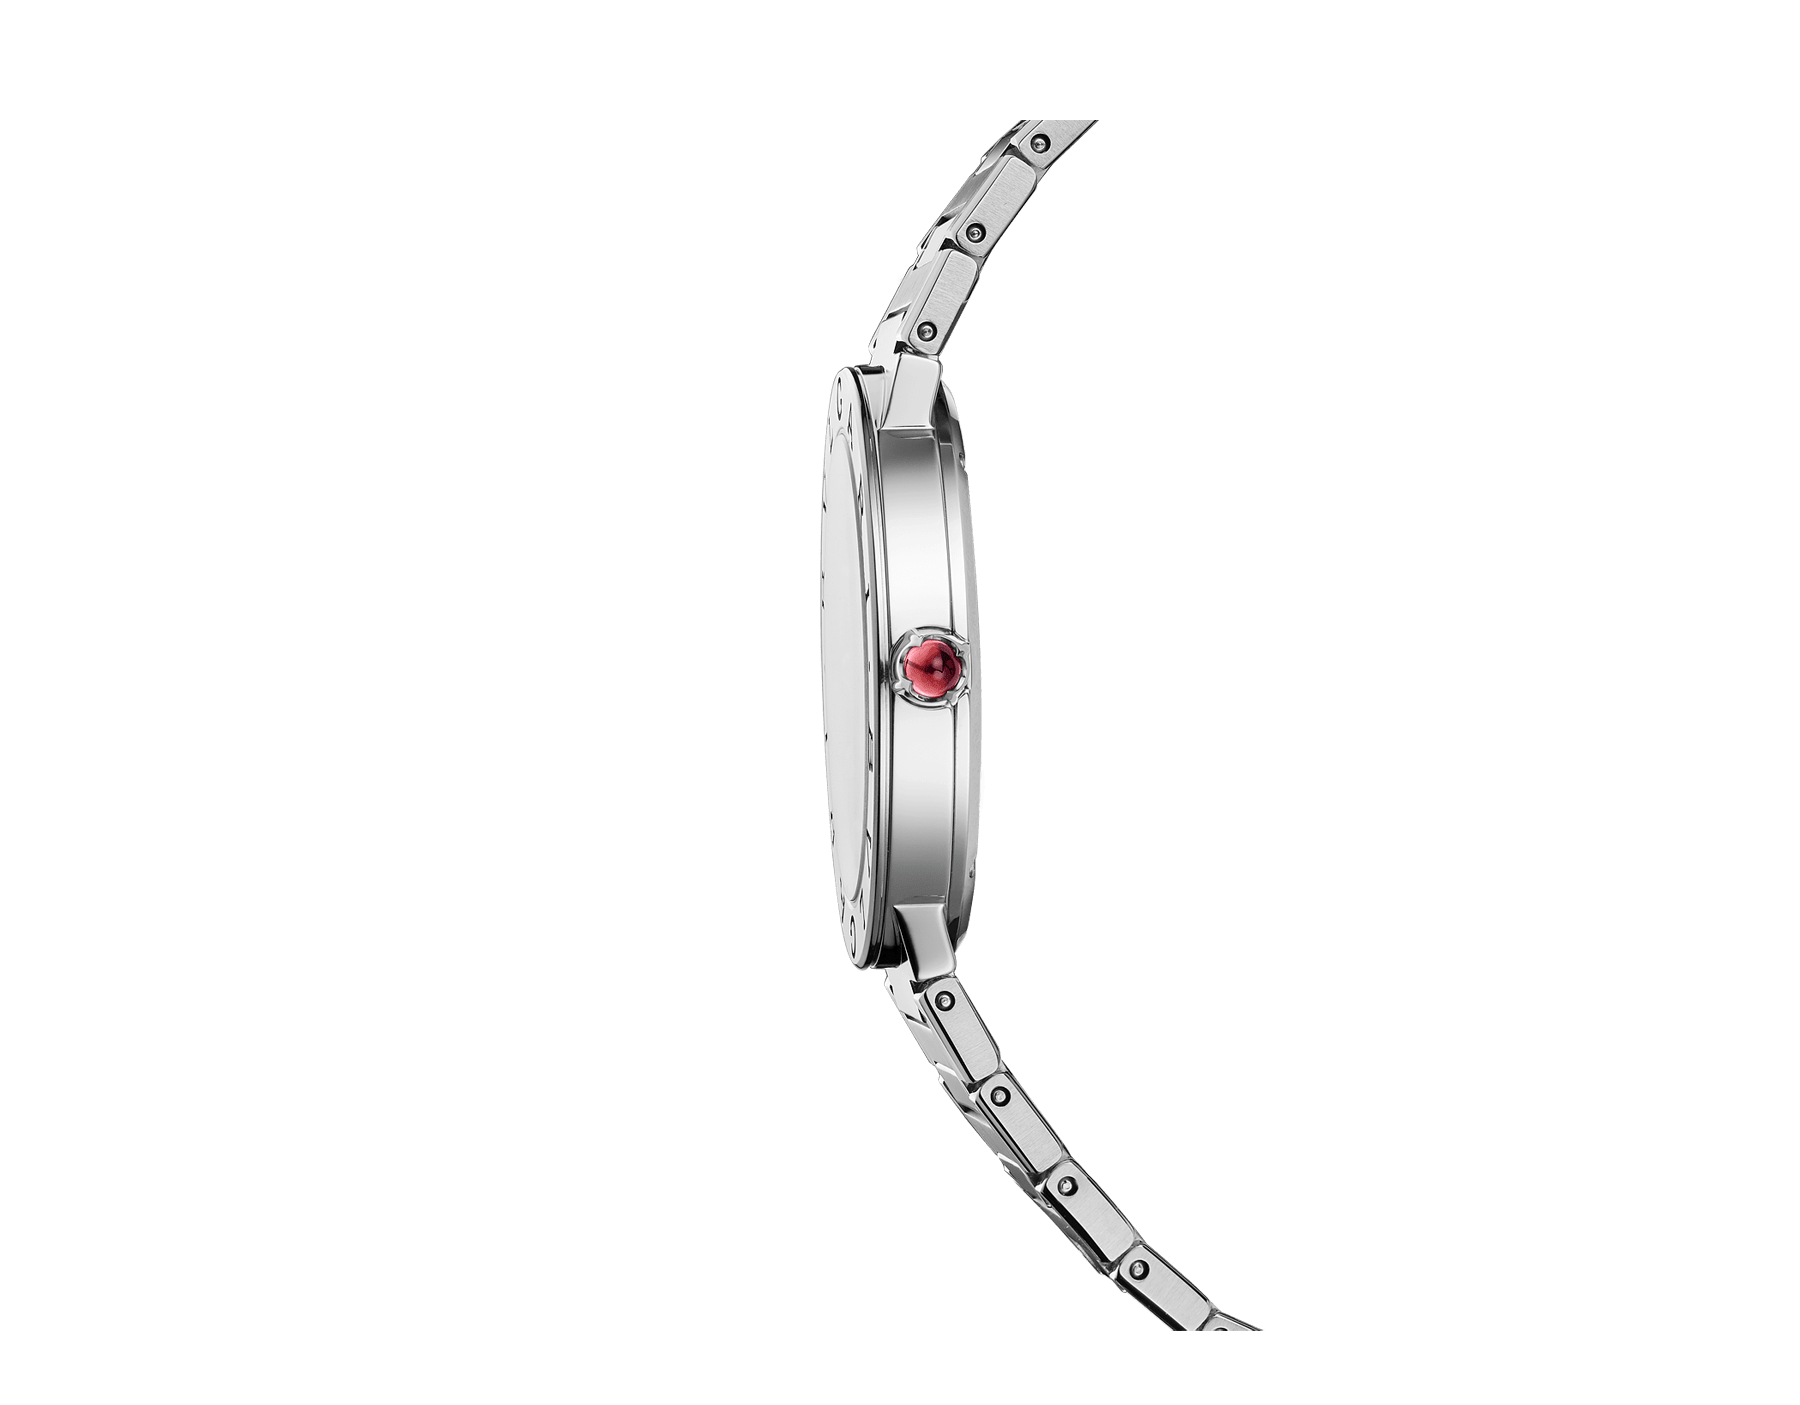 BVLGARI BVLGARI LADY watch with stainless steel case, stainless steel bracelet, stainless steel bezel engraved with double logo and green sun-brushed dial. 103066 image 3